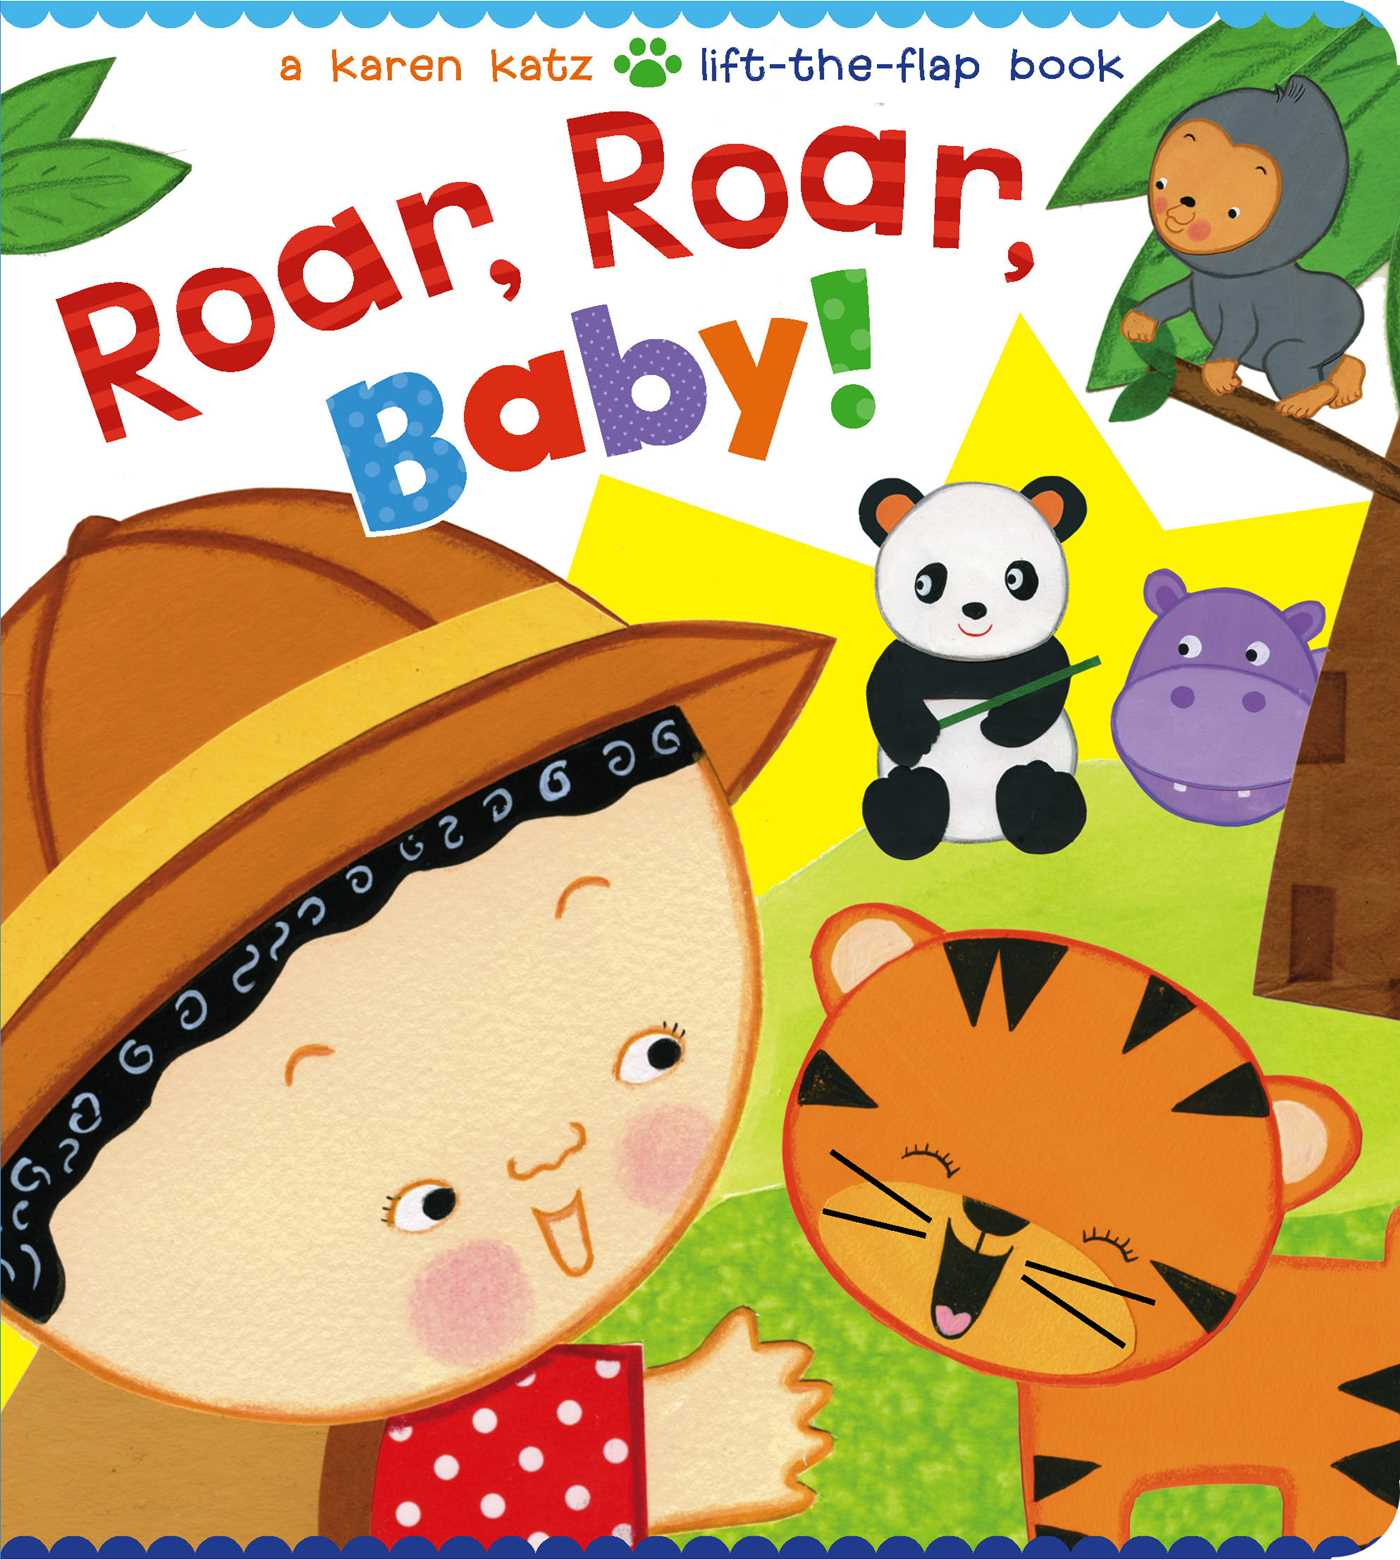 Book Cover Image (jpg): Roar, Roar, Baby!